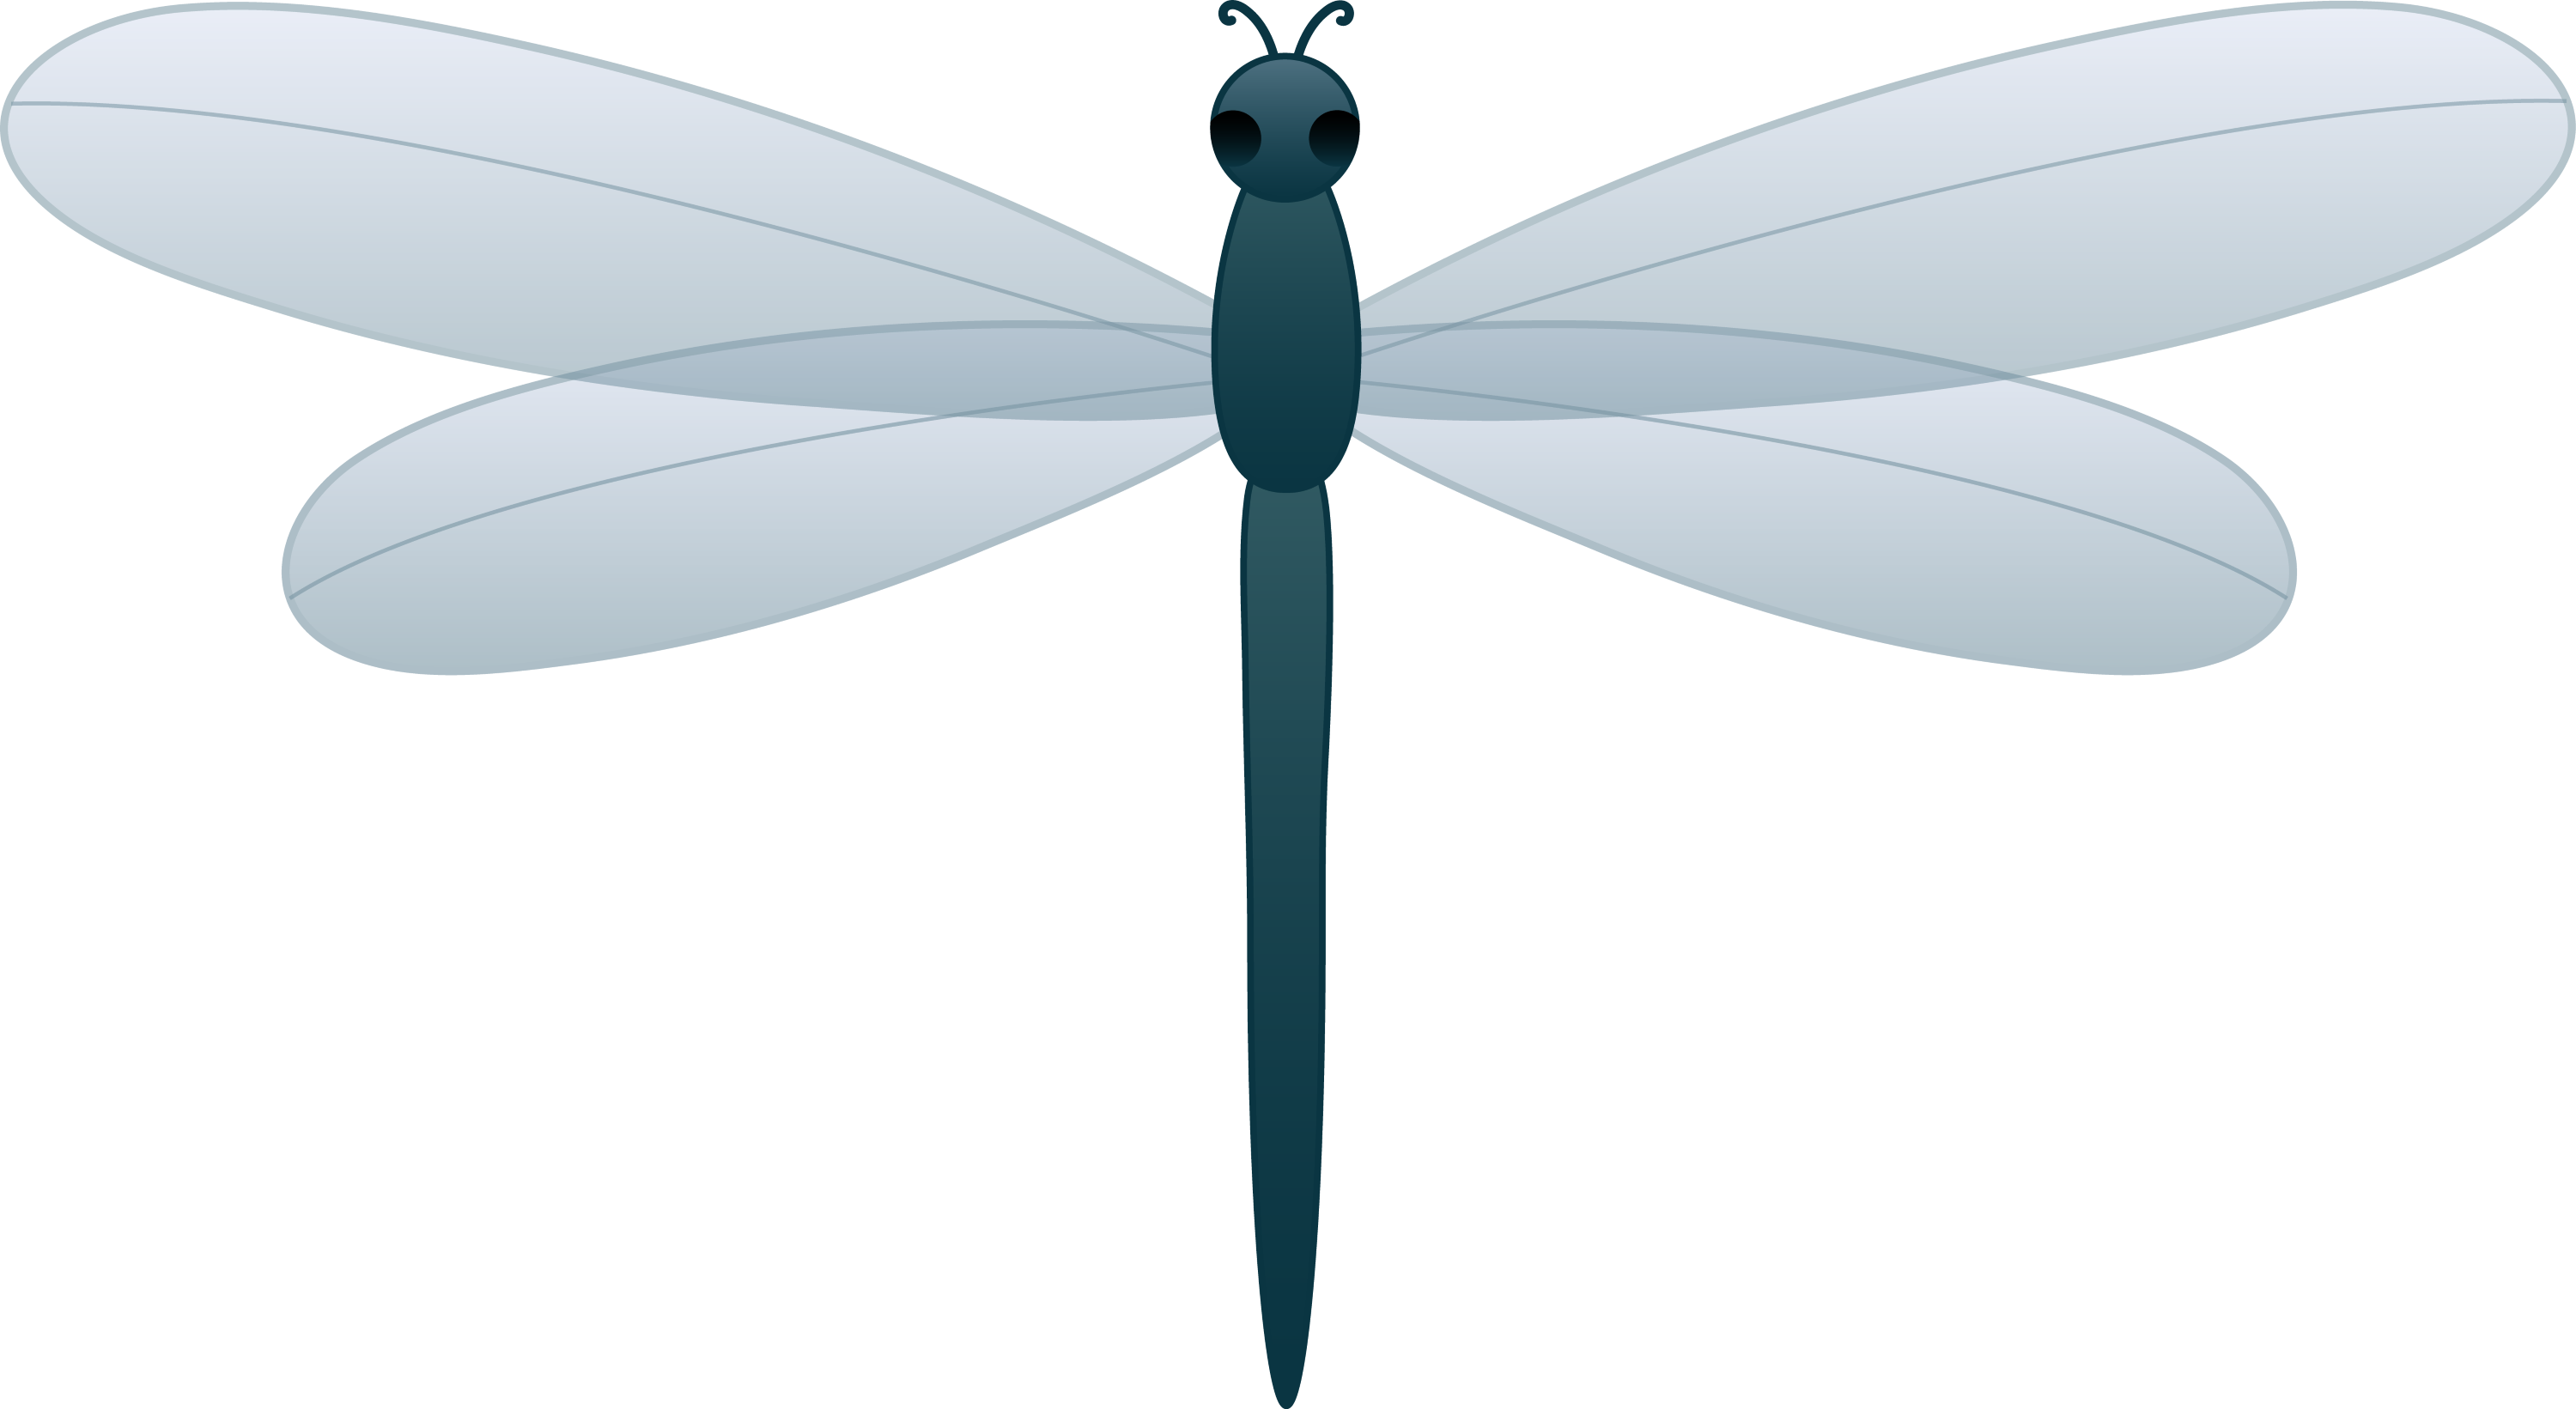 Blue Dragonfly - Free Clip Art